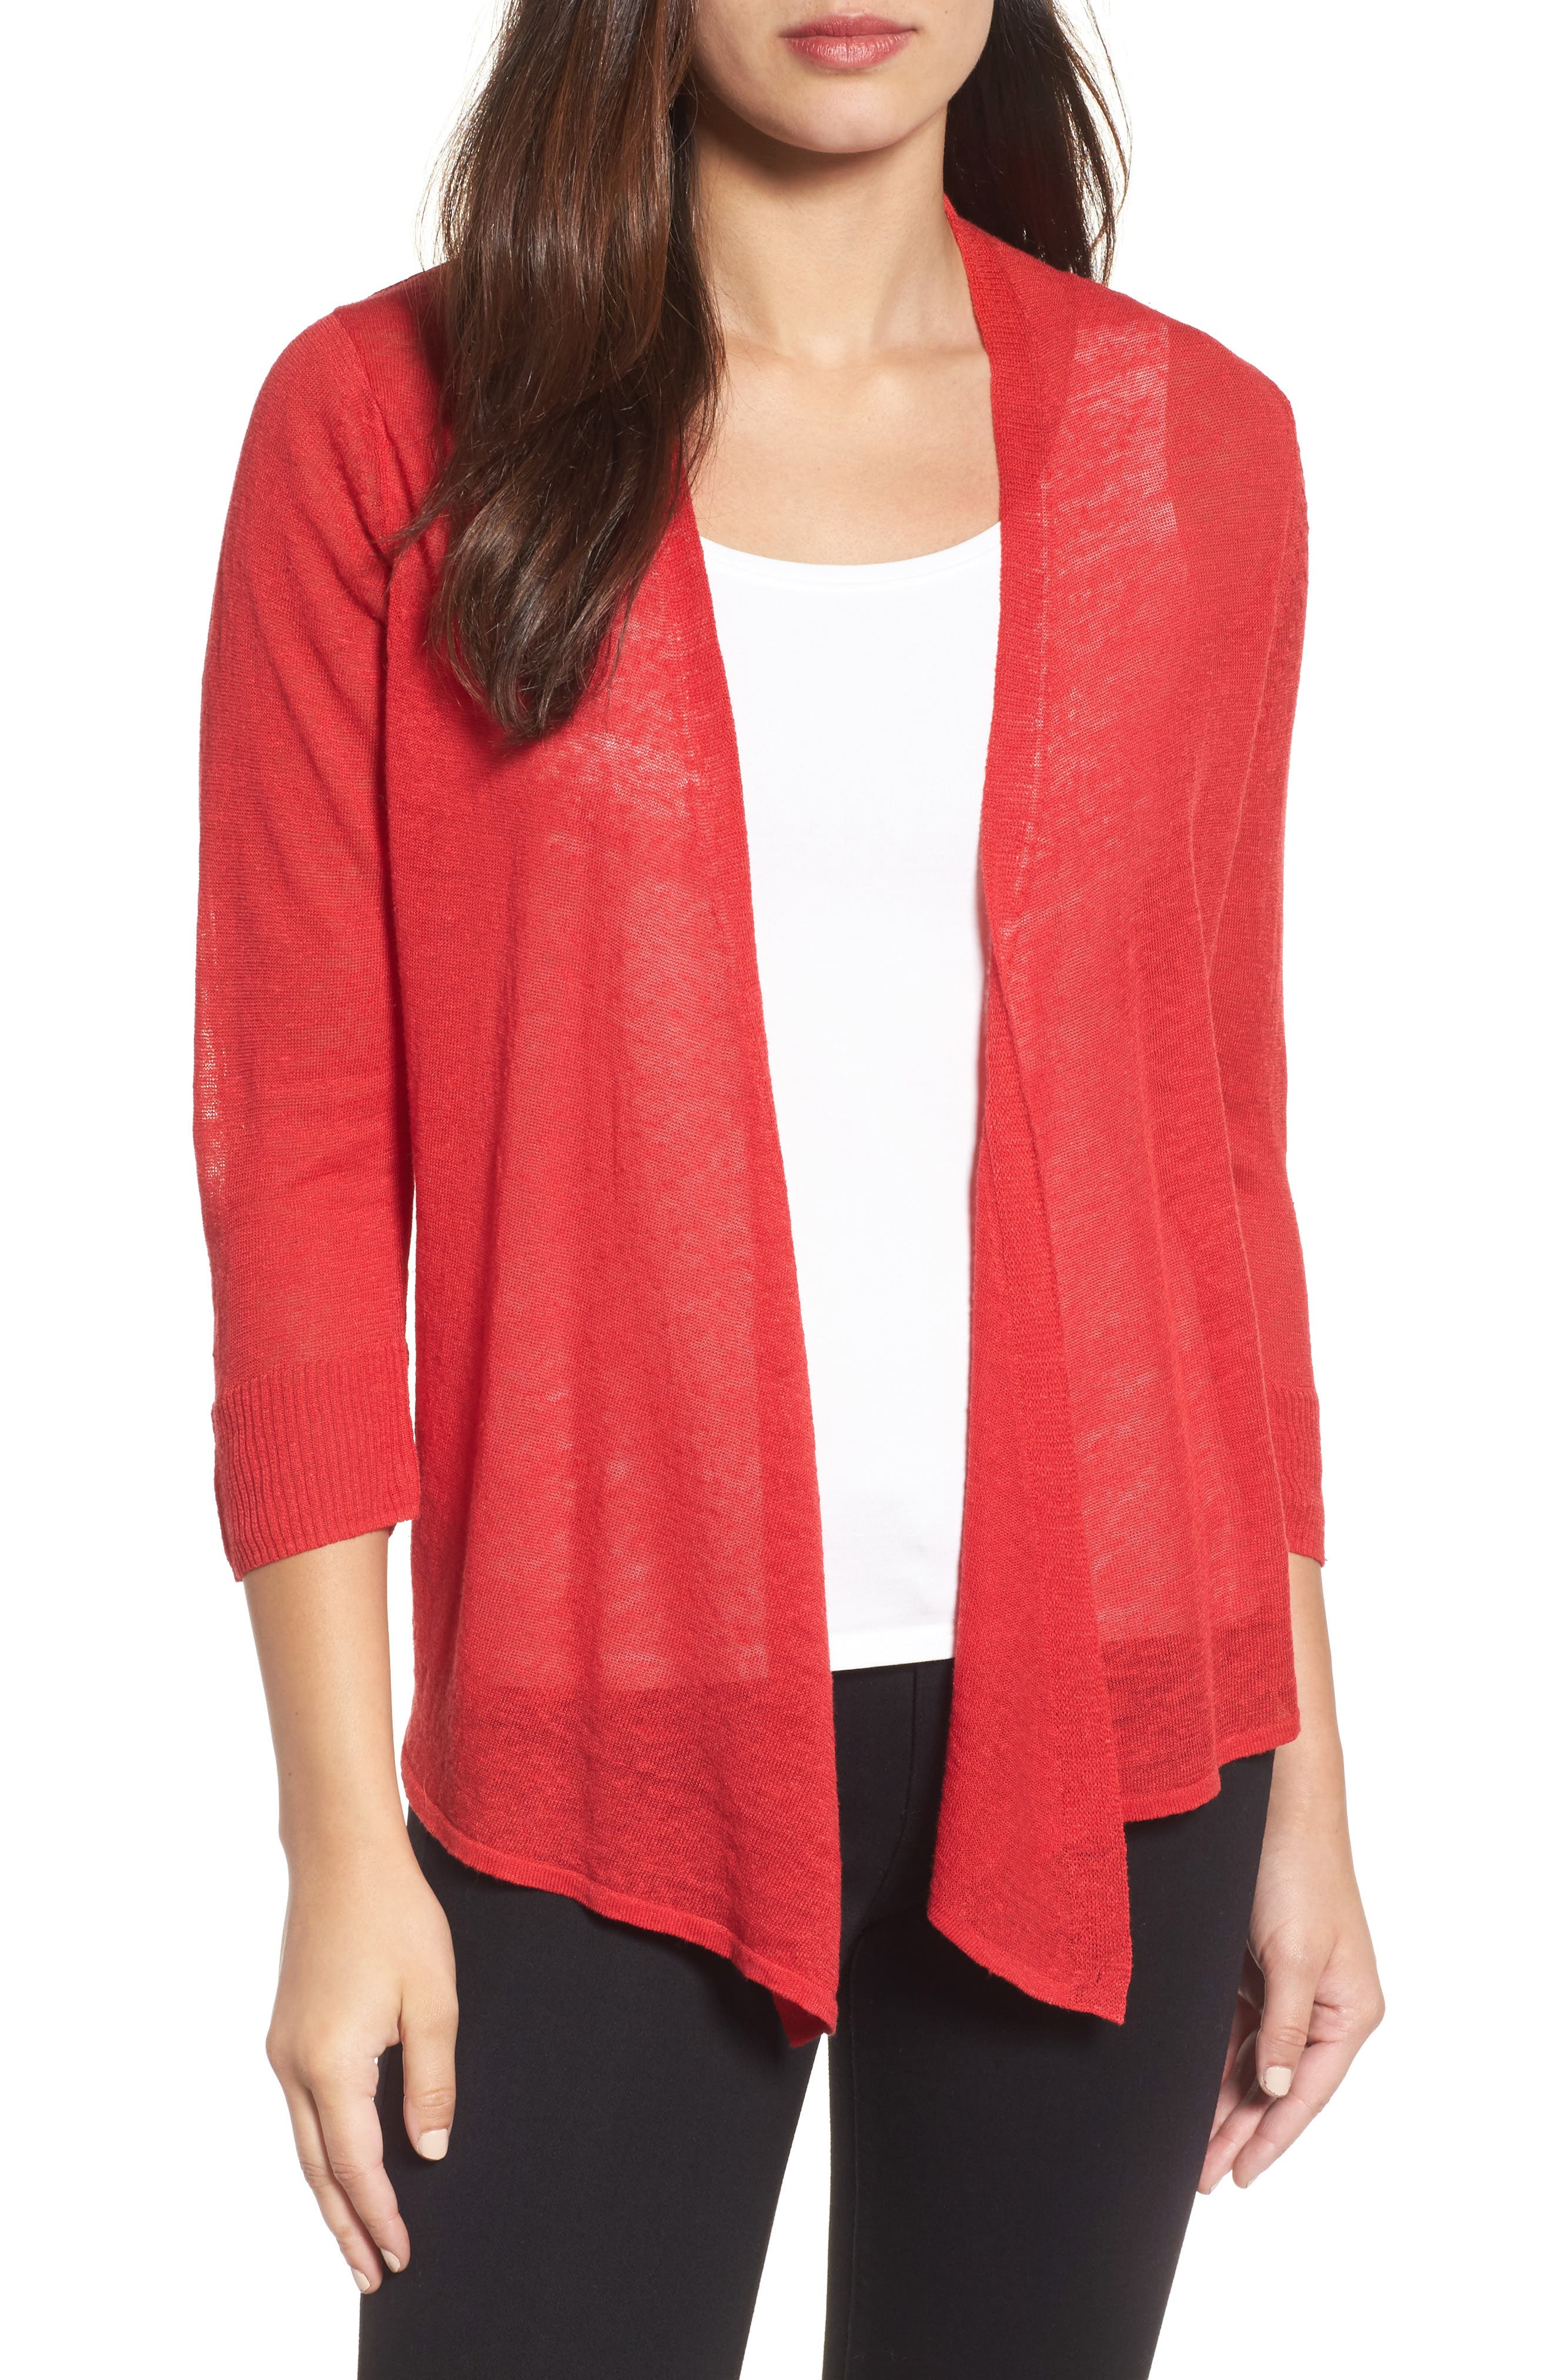 4-Way Cardigan,                             Main thumbnail 1, color,                             True Red